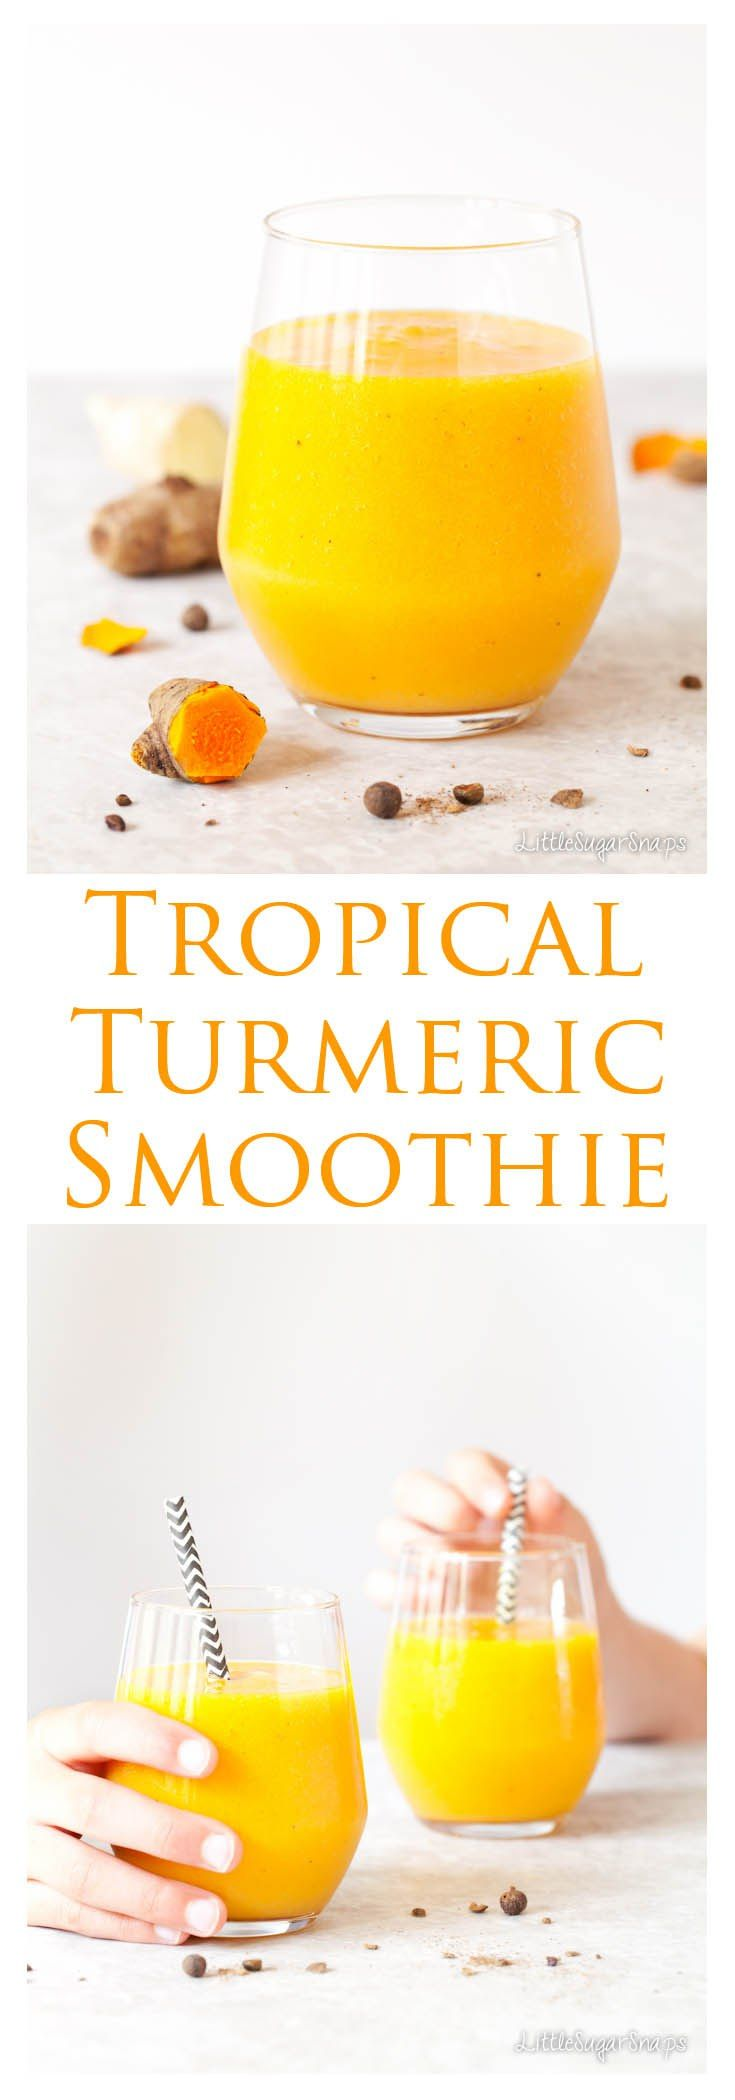 Tropical Turmeric Smoothie: Bright, cheerful and loaded with the goodness of turmeric, mango and pineapple, this anti-inflammatory Smoothie will ward of colds and flu throughout the year